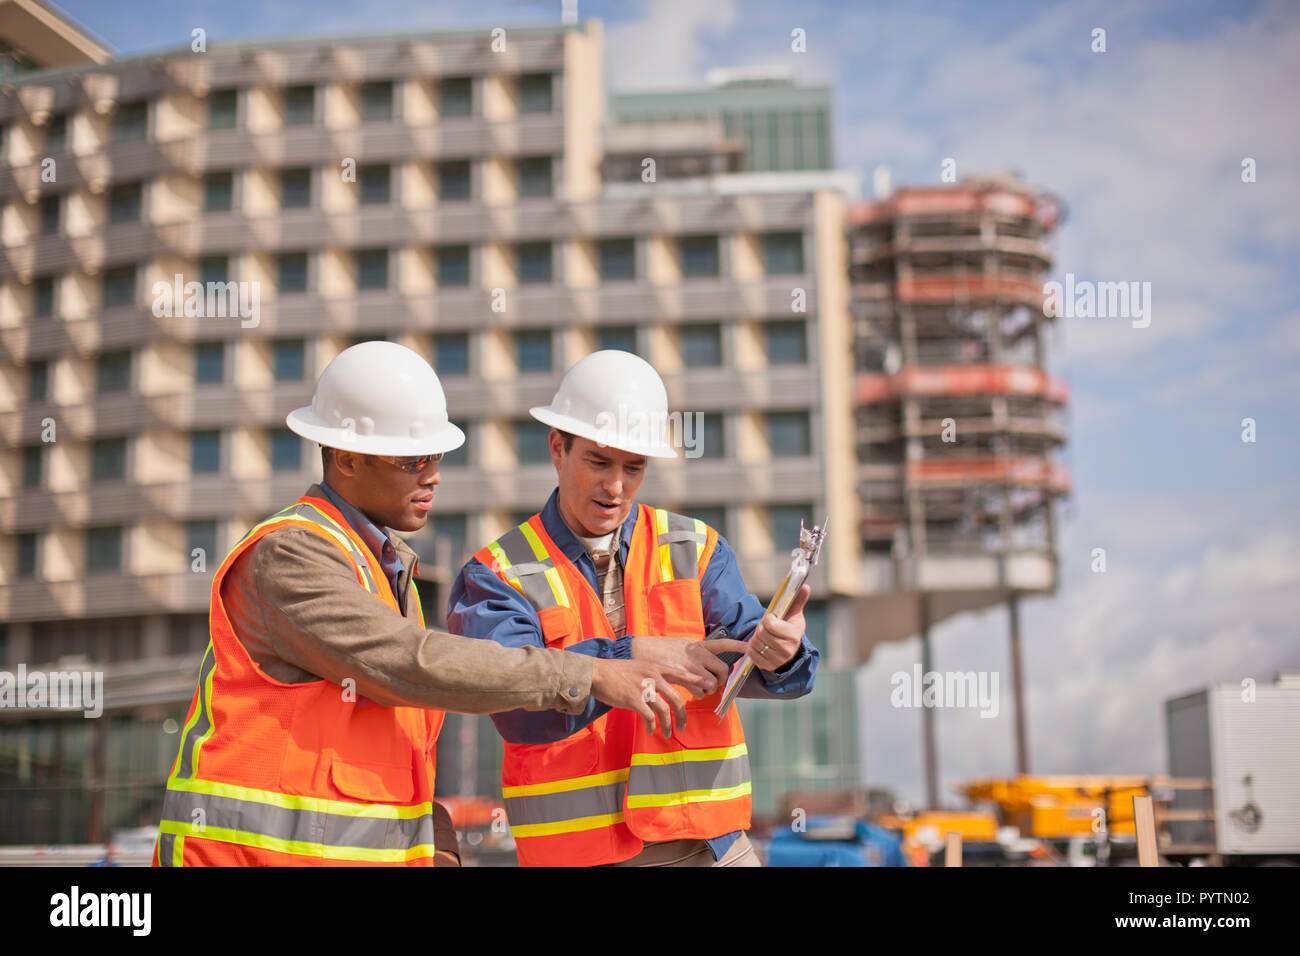 Two engineers in high visibility vests and hardhats discuss building plans on a construction site. - Stock Image